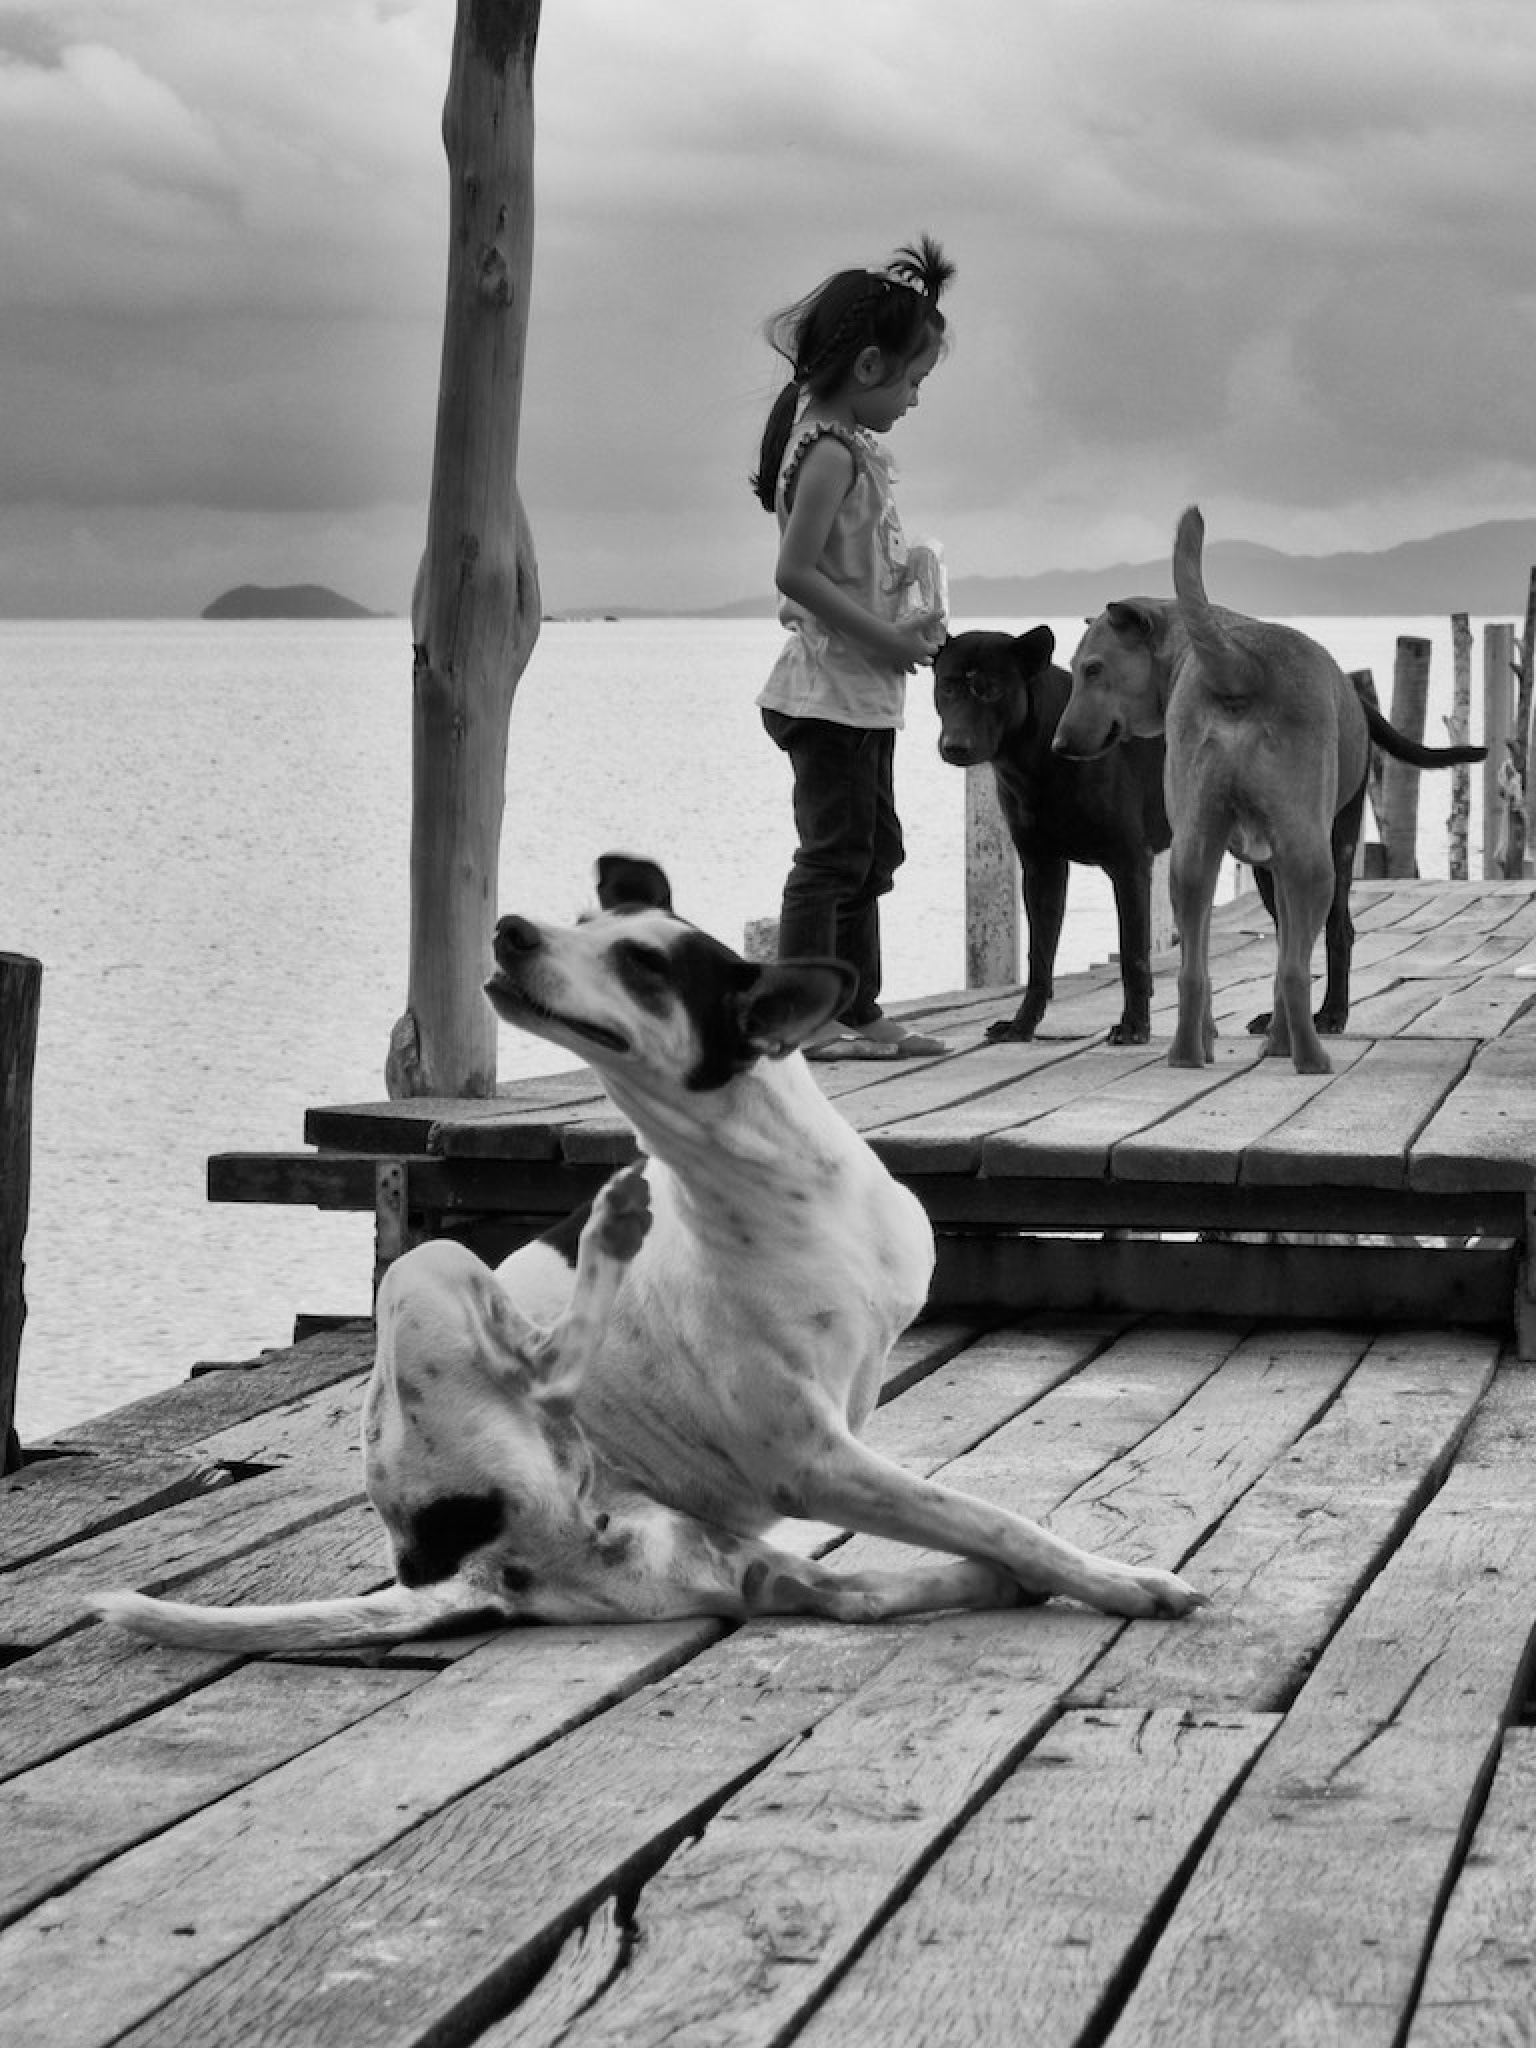 Three Dogs and a Girl by carlvanassche